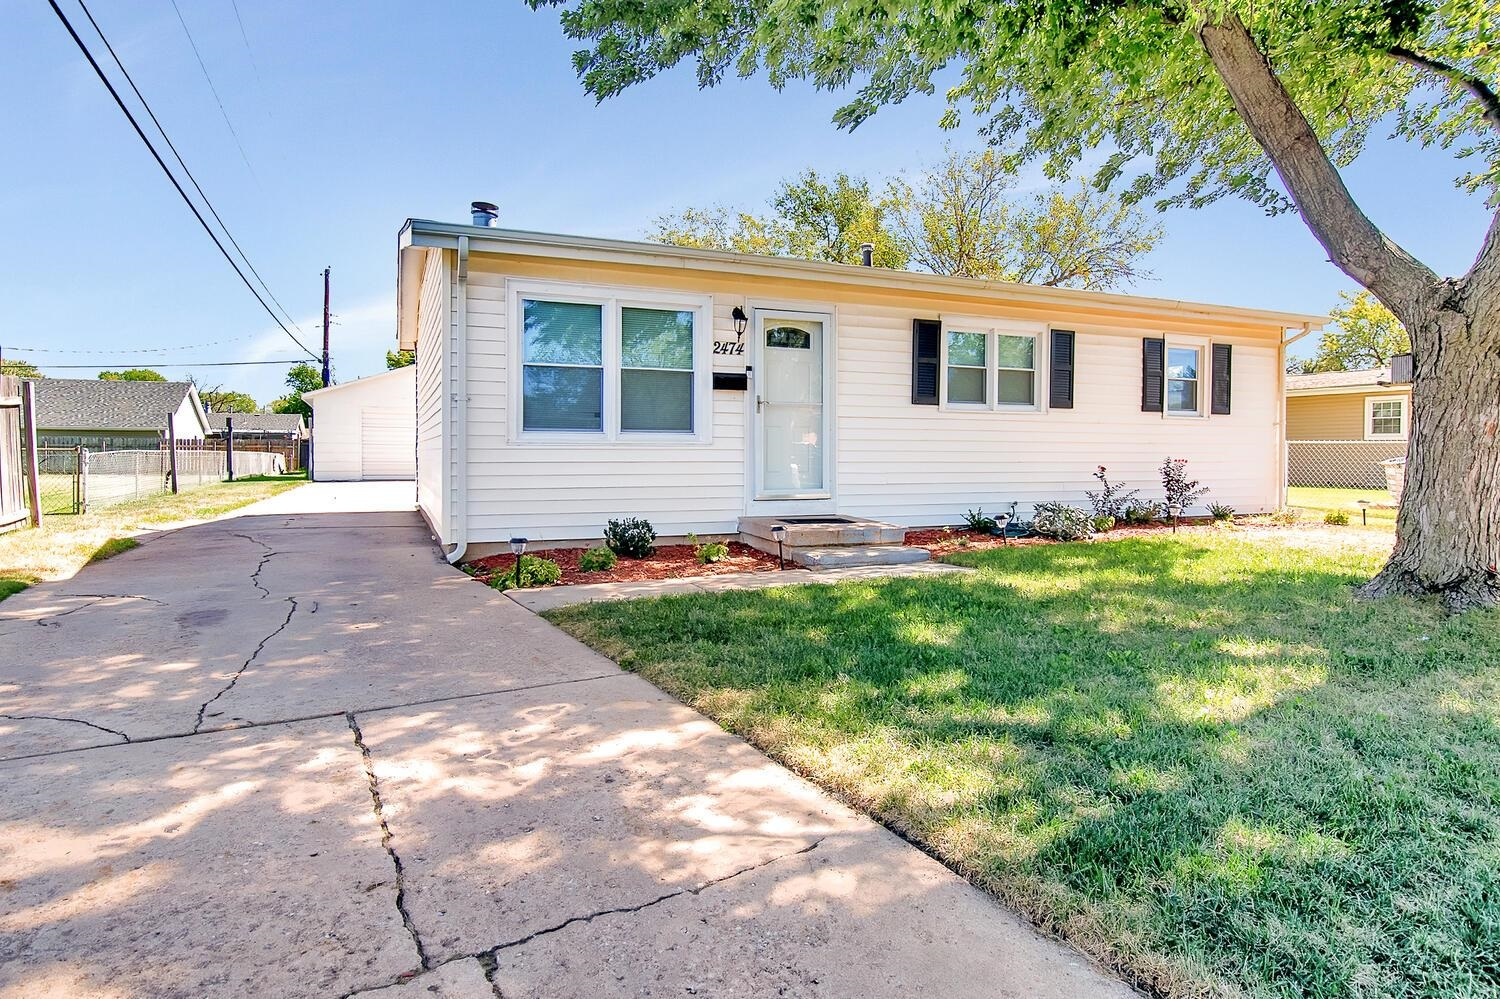 Cute three bedroom one bath home close to shopping, food, highways and a short walk or drive from OJ